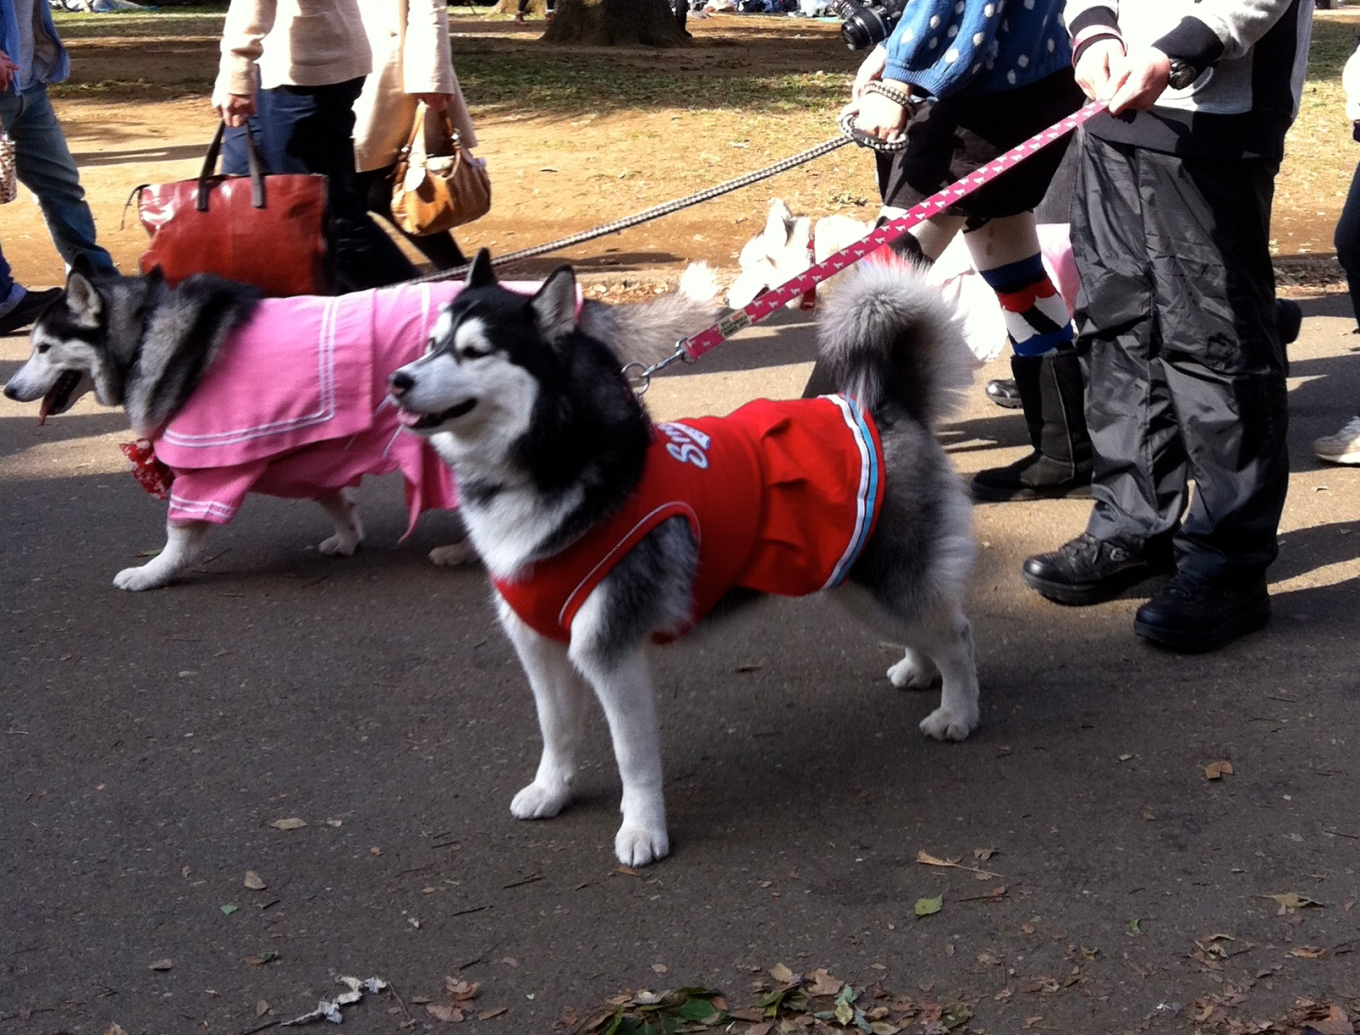 Bonus entertainment: Yoyogi Park is home to all kinds of free entertainment every Sunday afternoon, from rockabilly dancing to traditional rakugo to the local husky club dressed in manga schoolgirl uniforms.